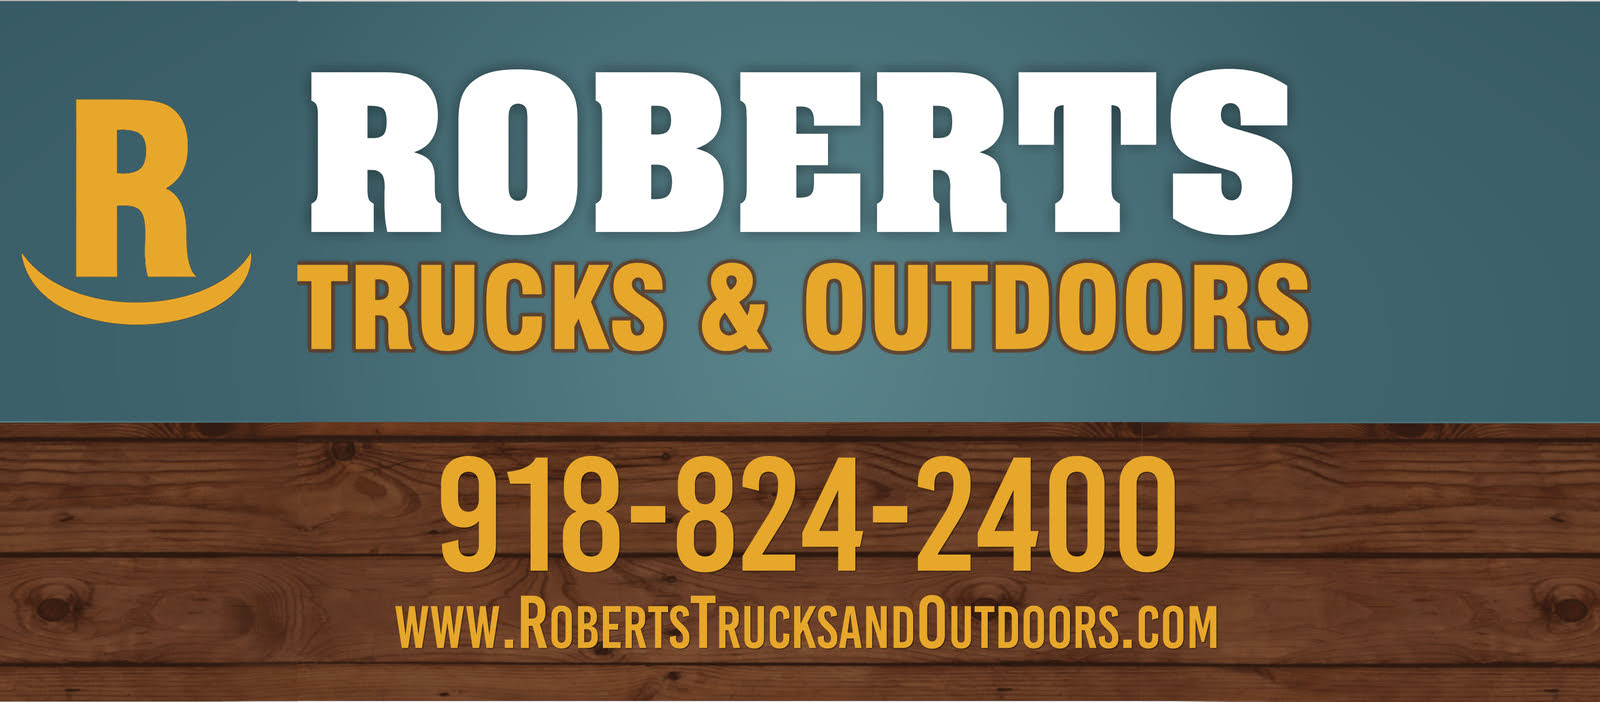 Roberts Truck & Outdoors - Pryor, OK: Read Consumer ...